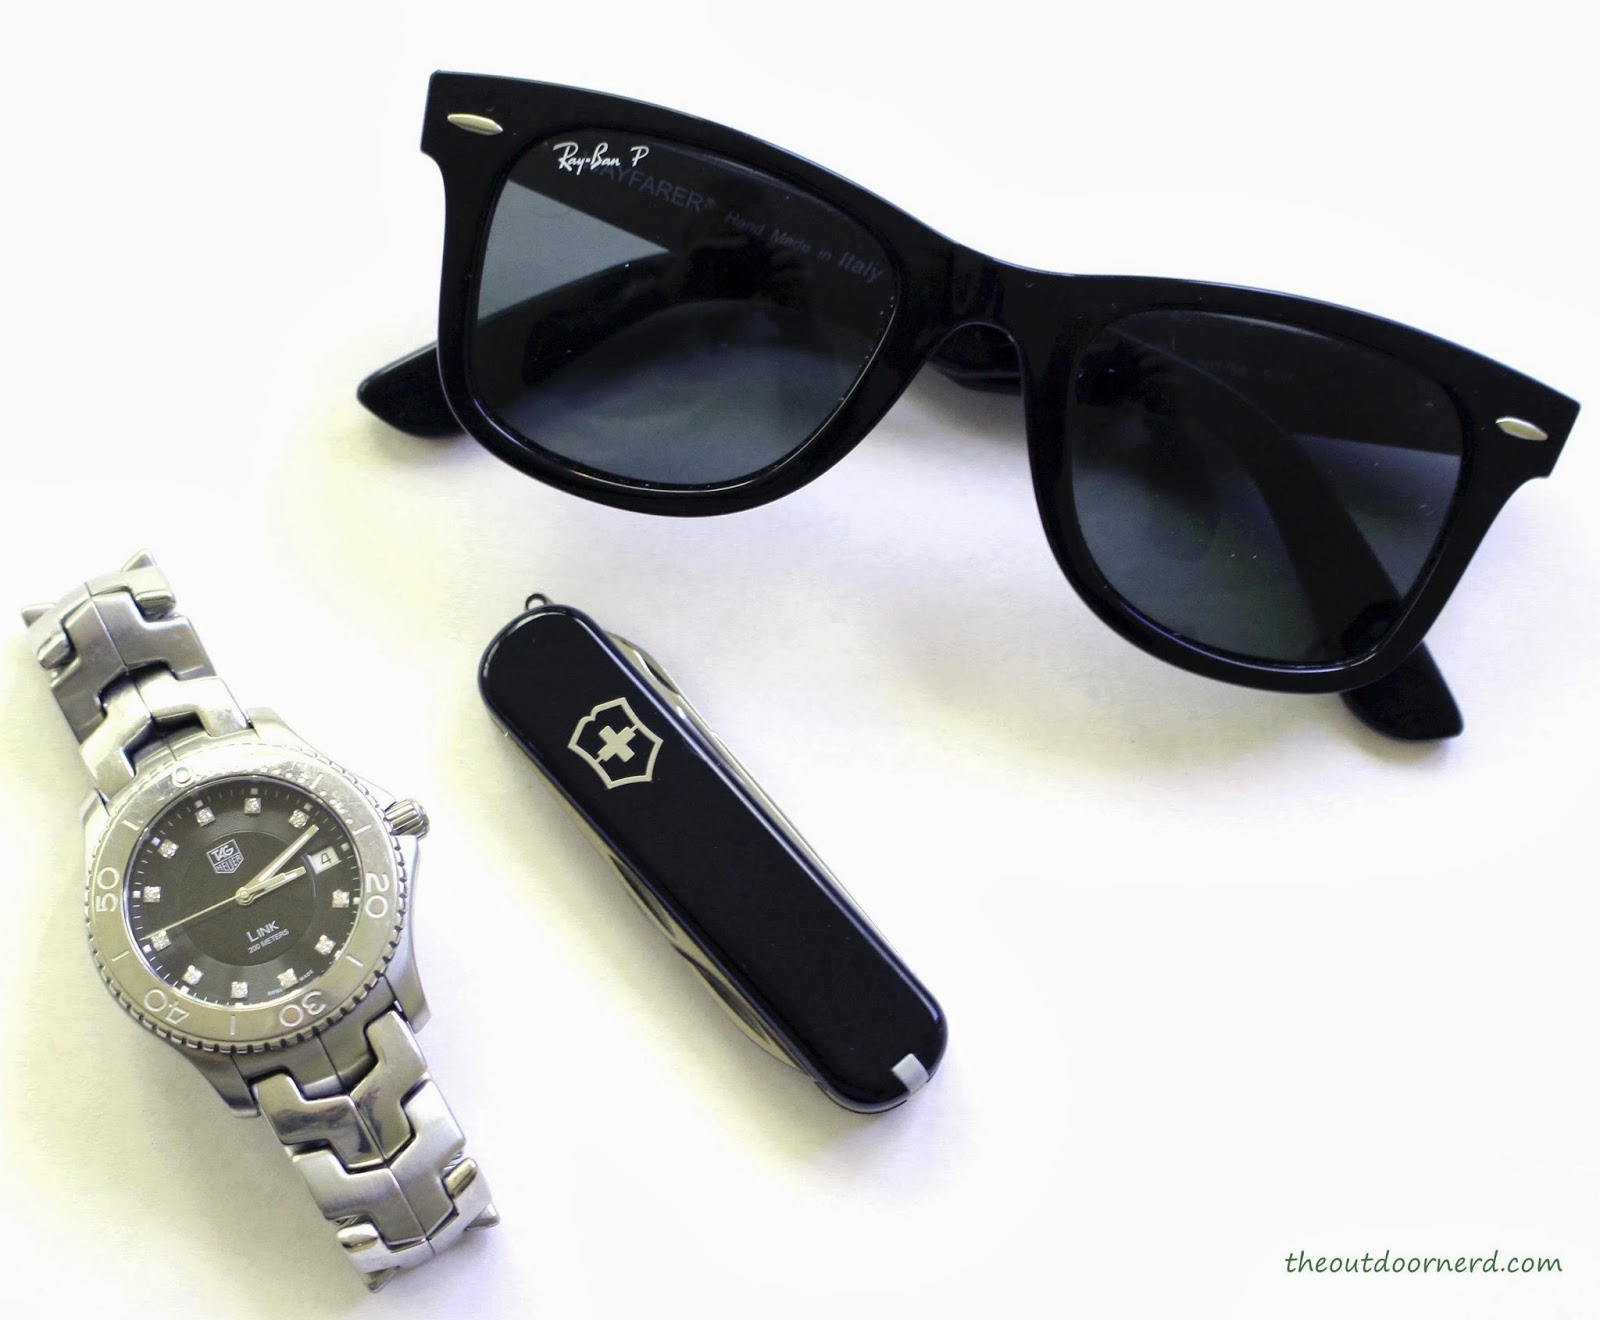 Victorinox Executive Multi-Tool Shown With Ray-Ban Wayfarers and Tag Heuer Link Watch